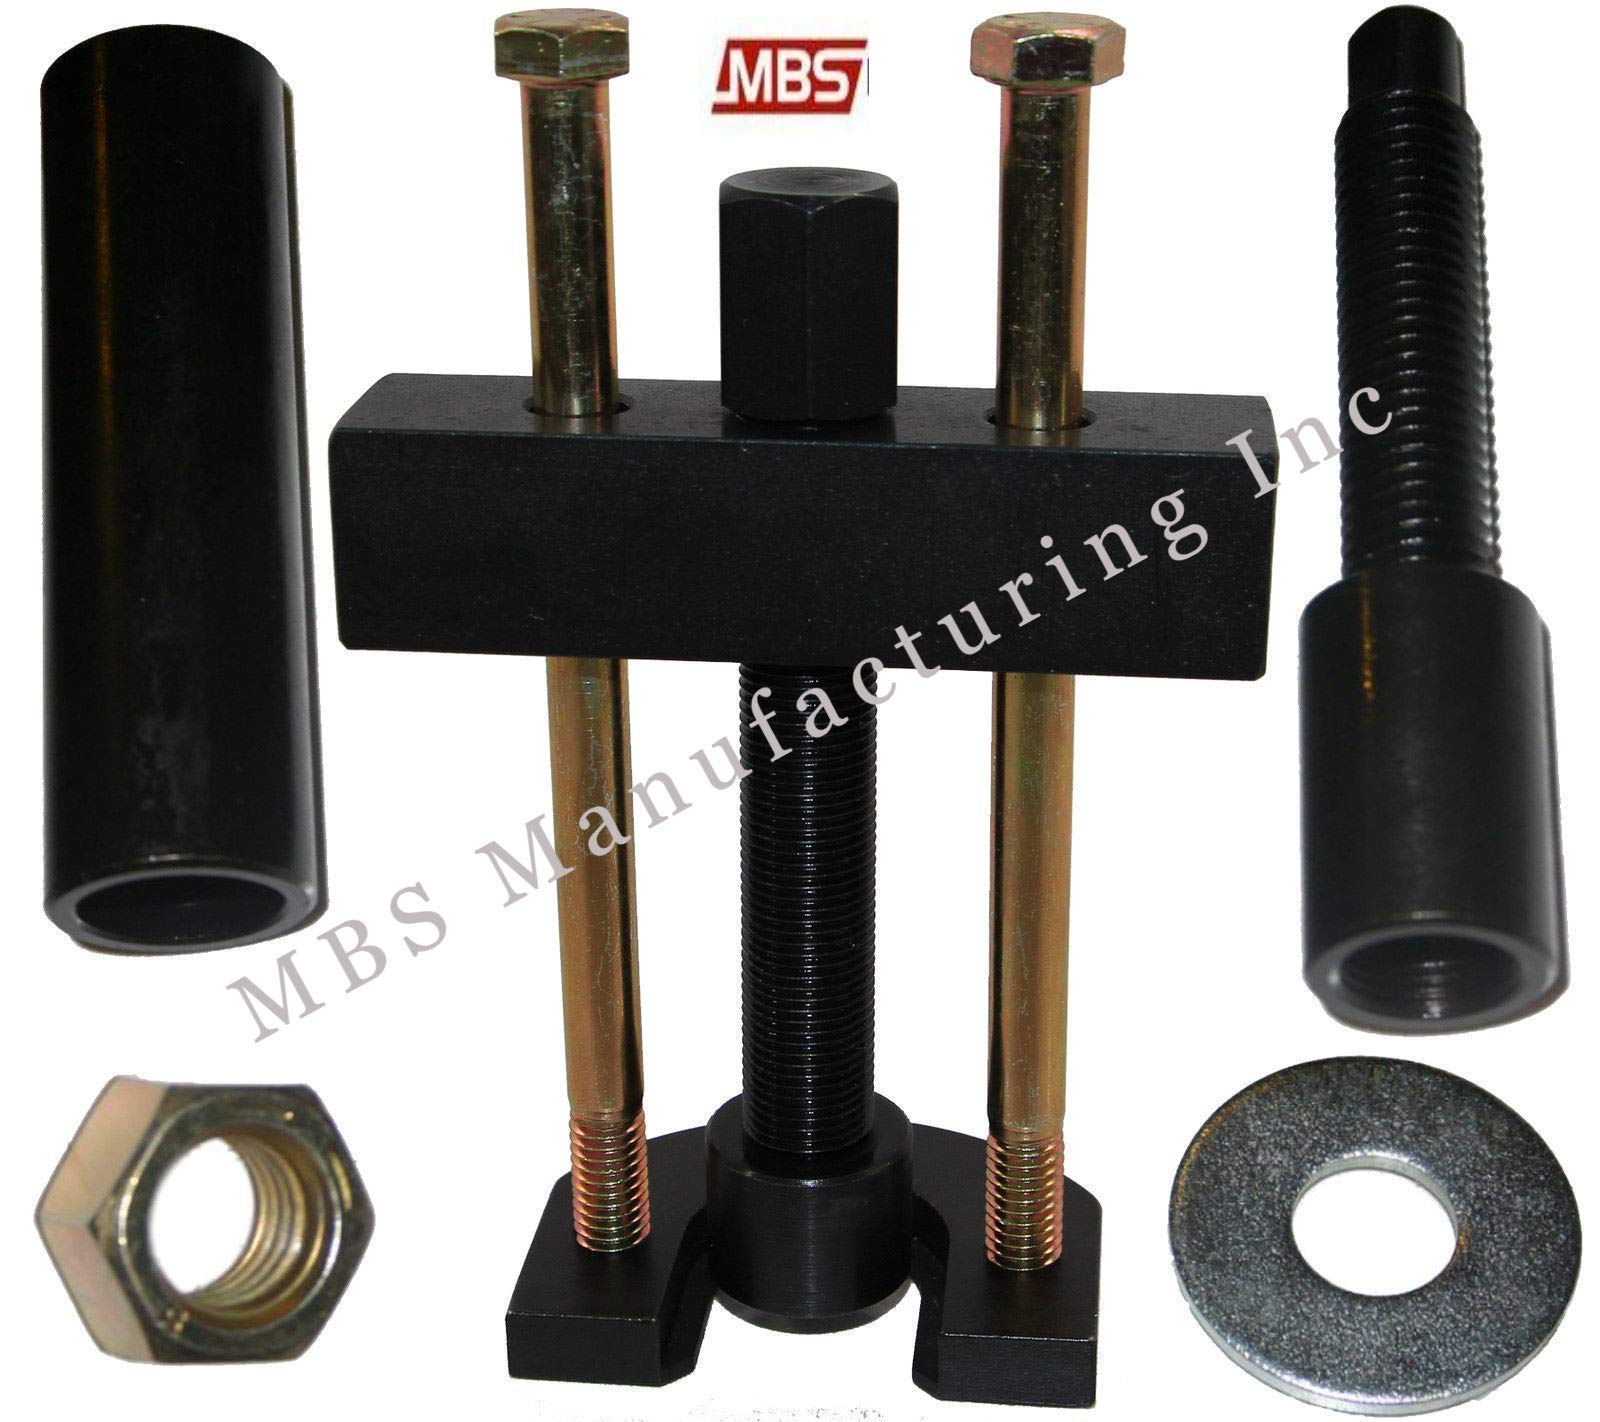 MBS Mfg Harley Davidson Big Twin 5 and 6 Speed Transmission Mainshaft Inner Bearing Race Puller and Installer (1984-2006)